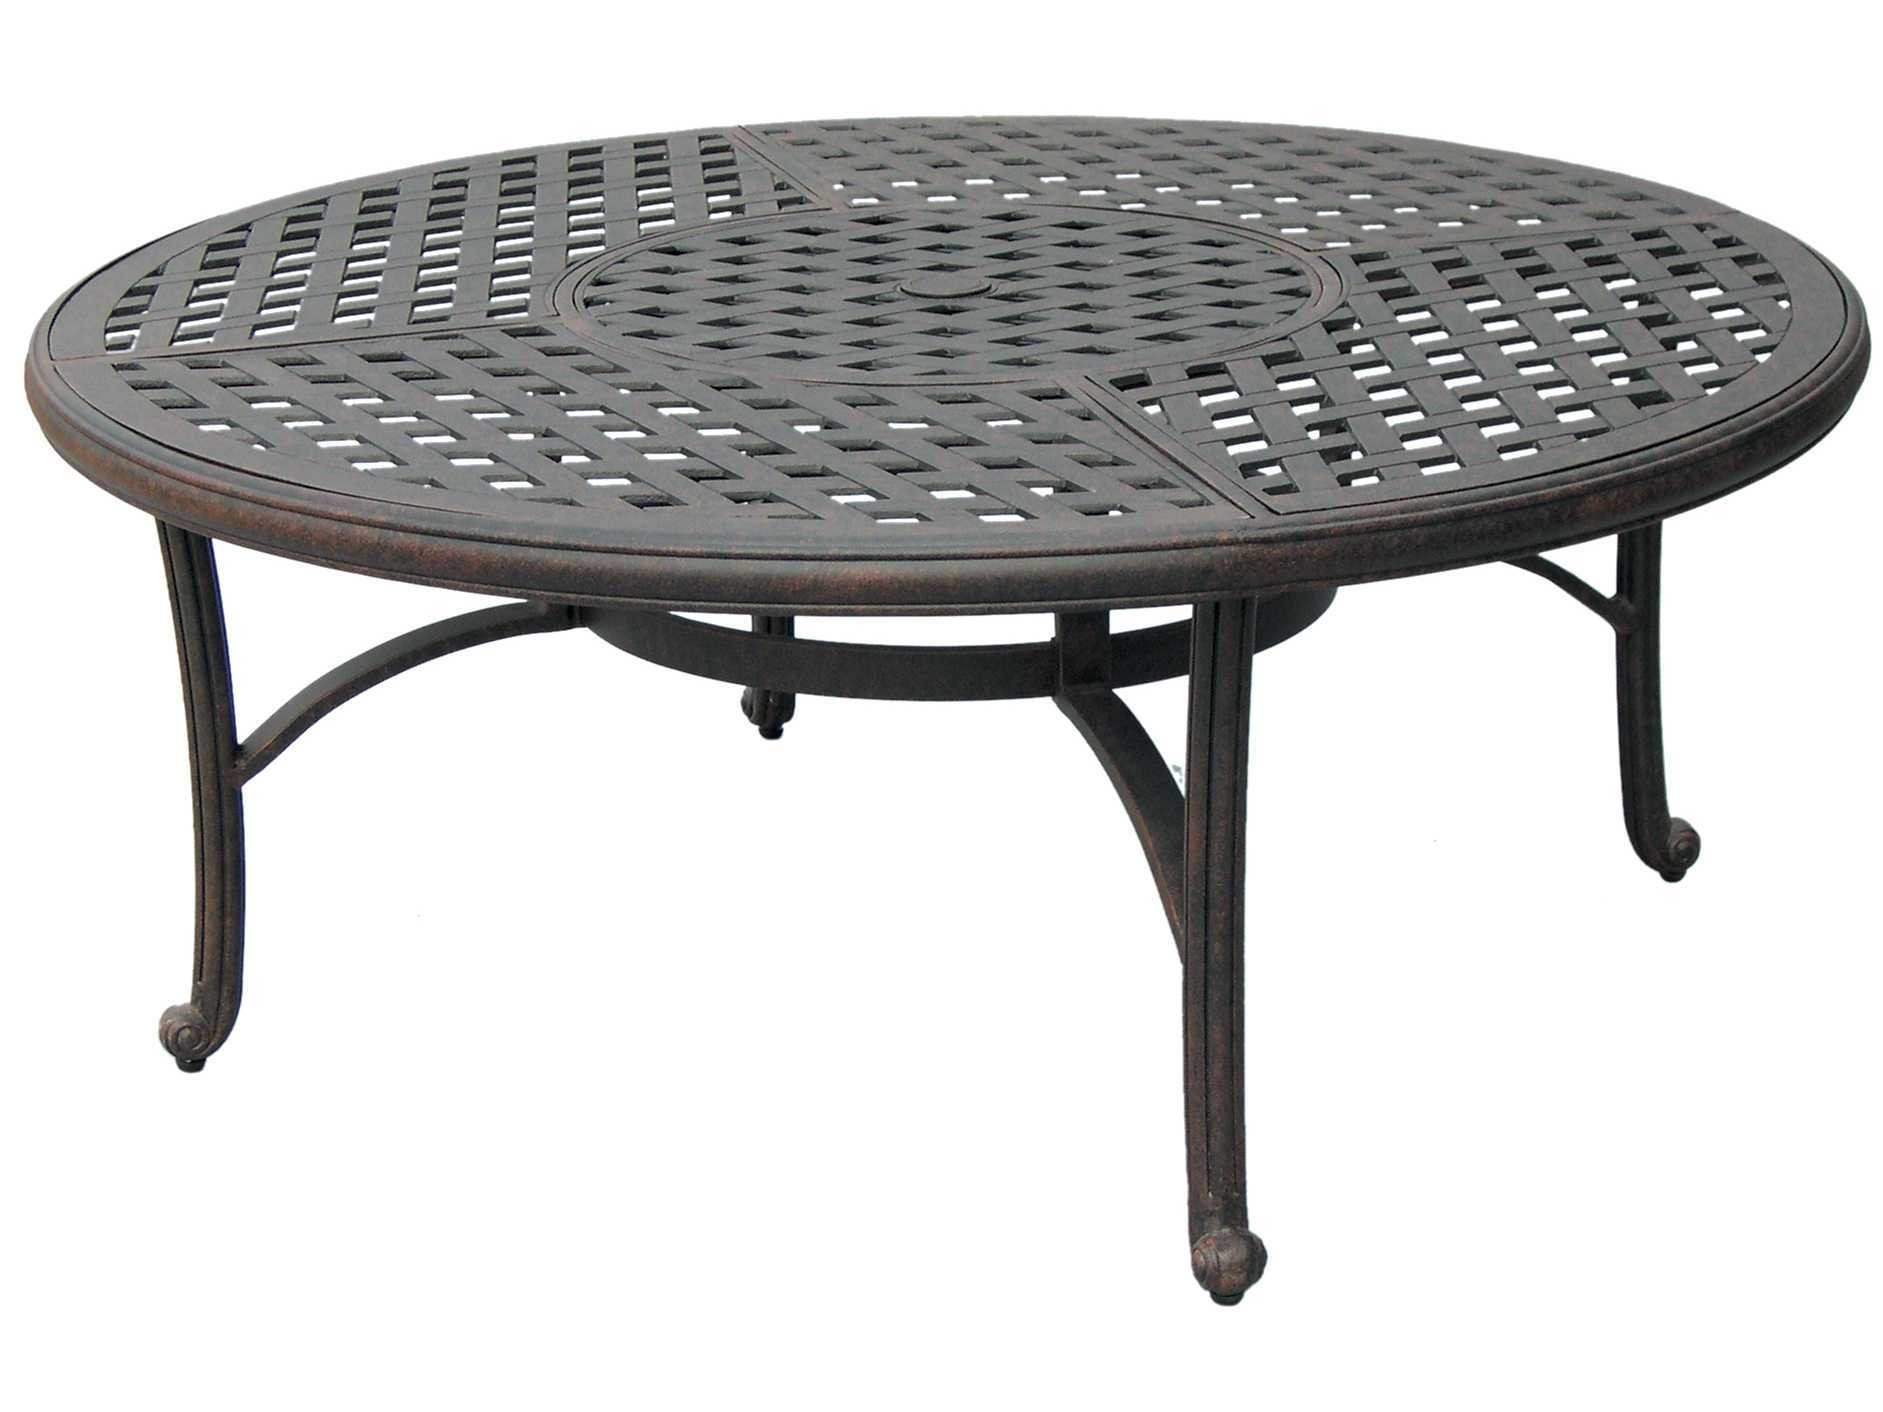 Best ideas about Round Patio Table . Save or Pin Darlee Outdoor Living Series 30 Cast Aluminum Antique Now.